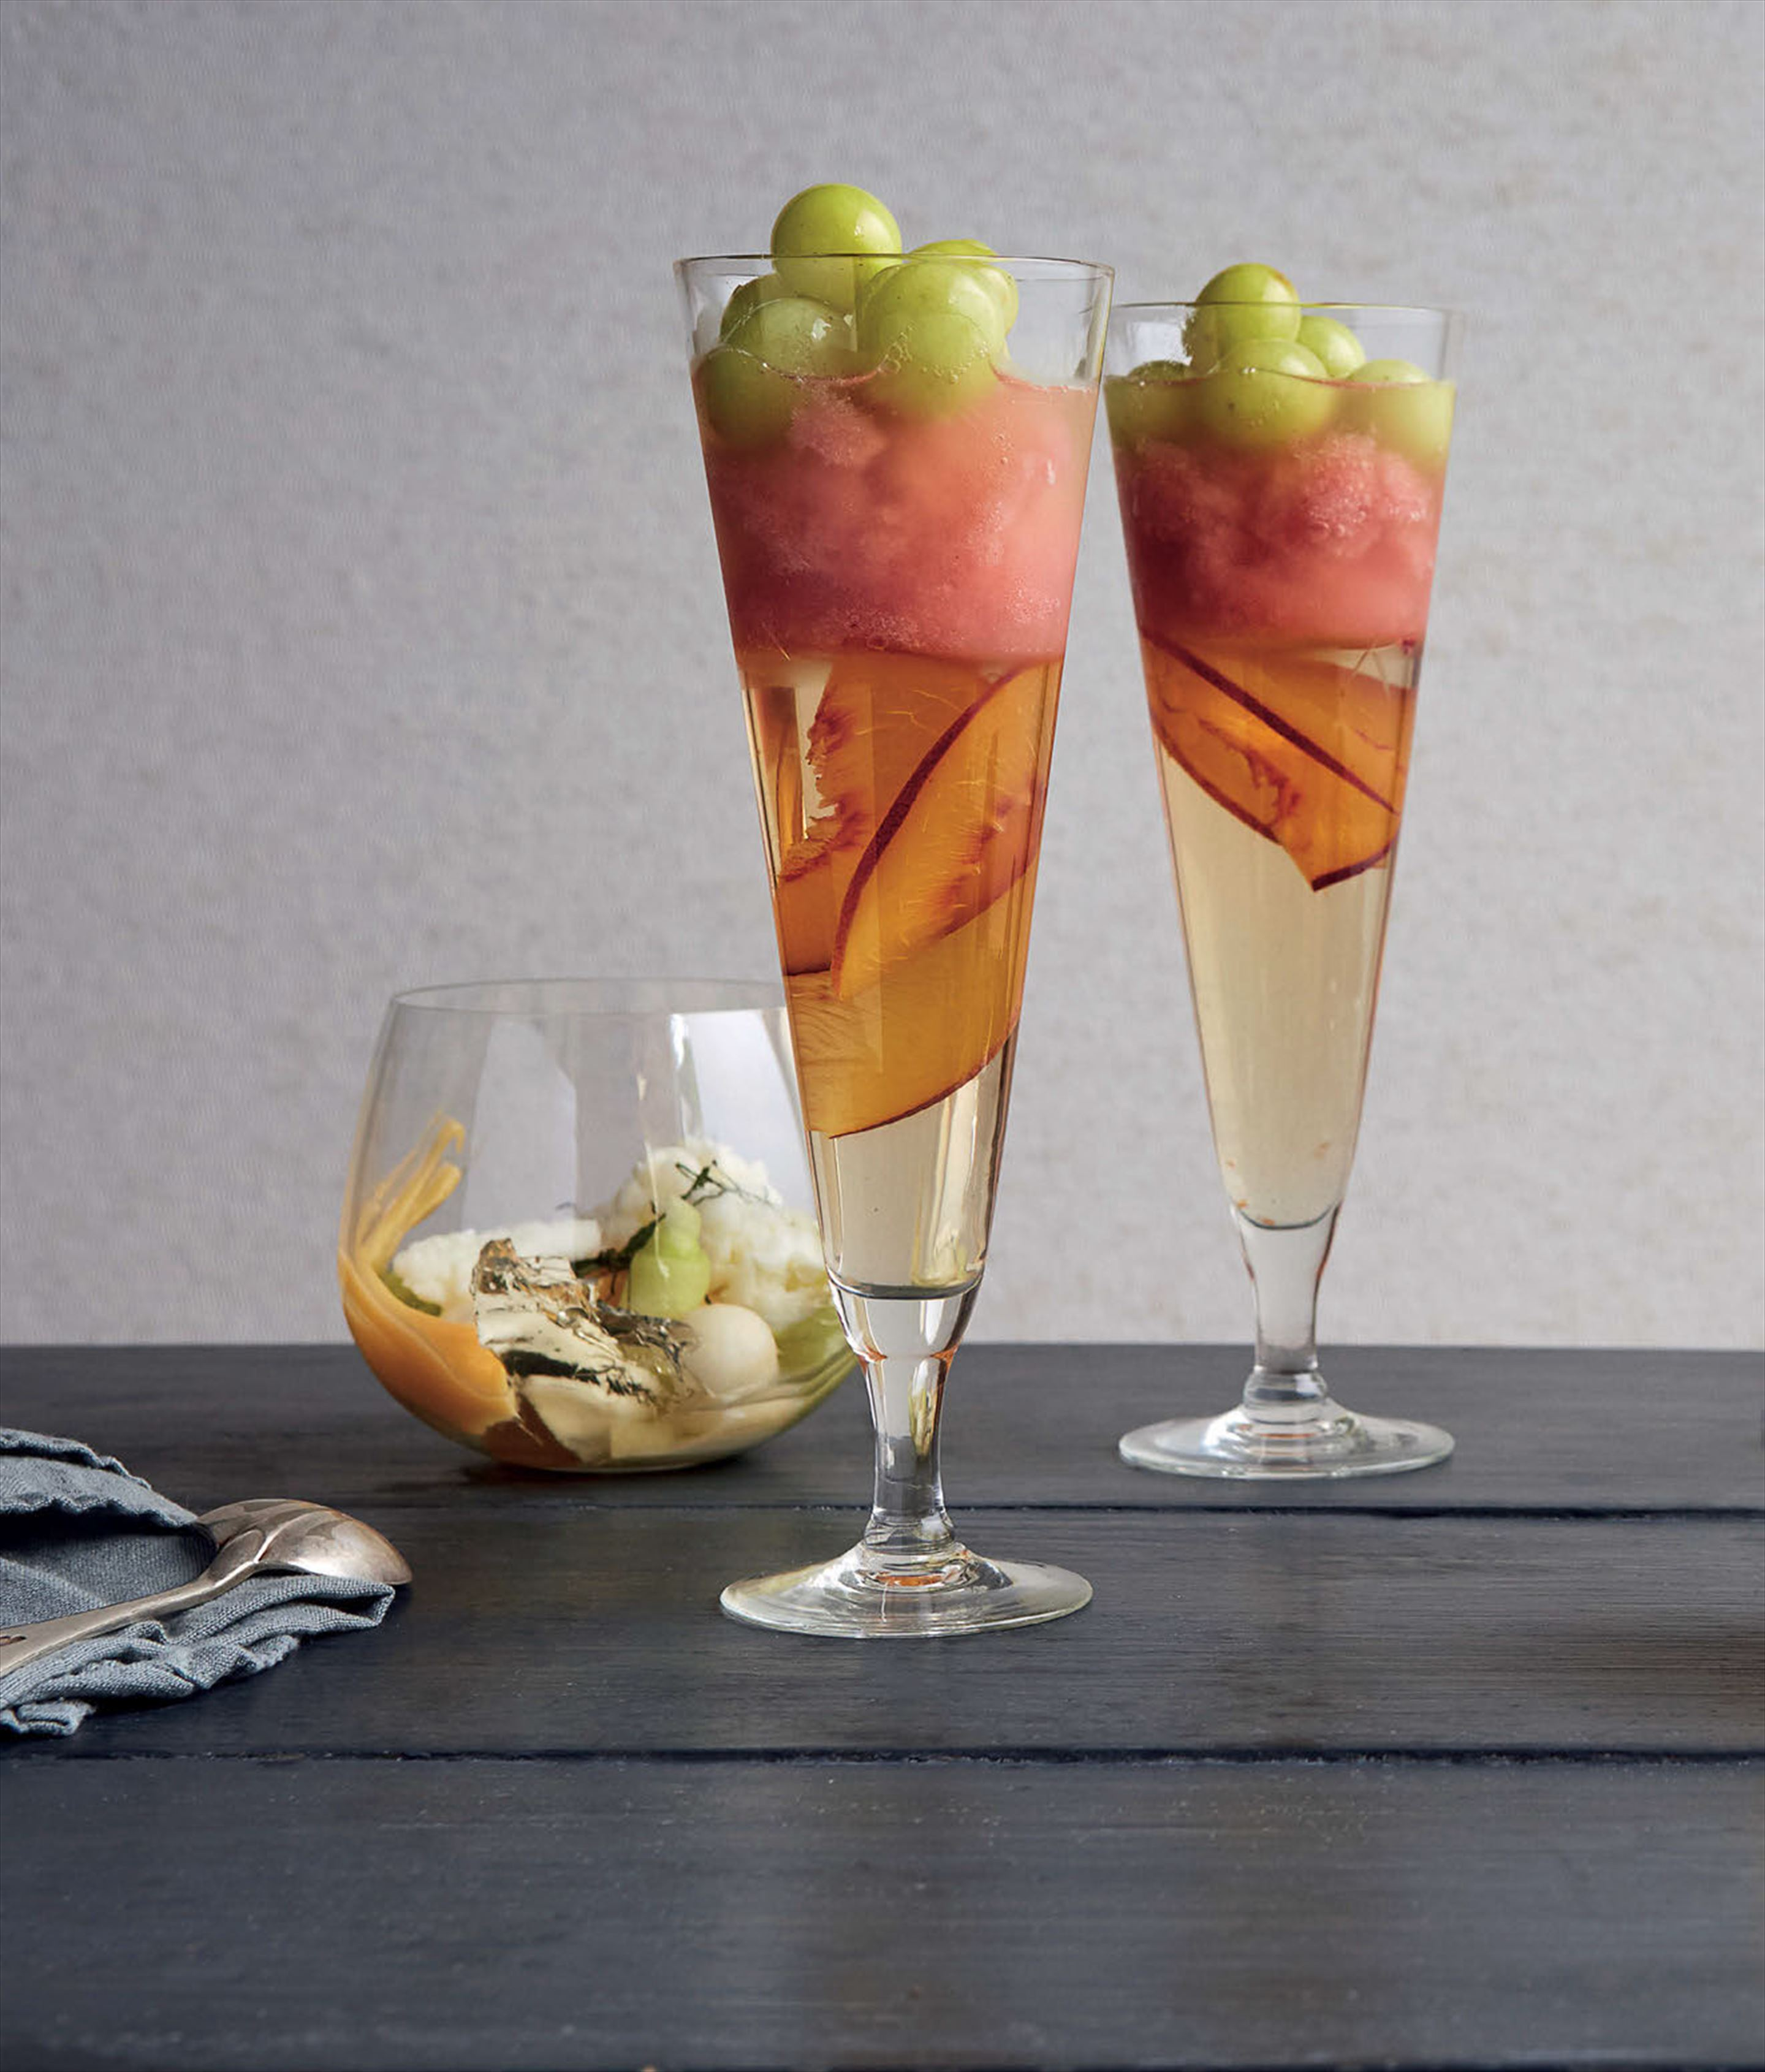 'Bellini' with fizzy grapes